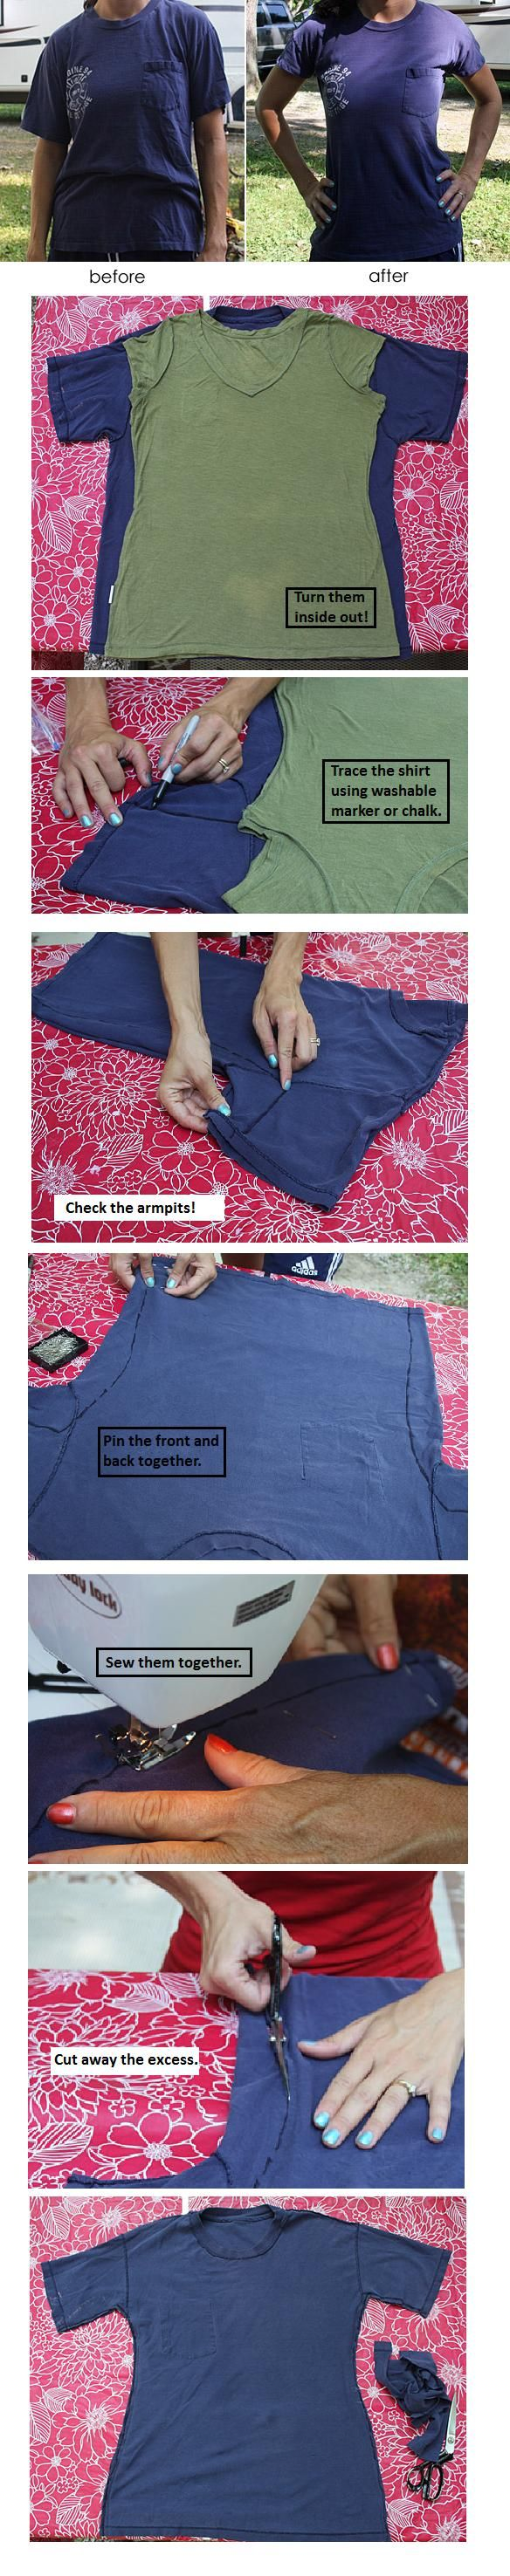 Resizing your clothes! (works for jeans too!)